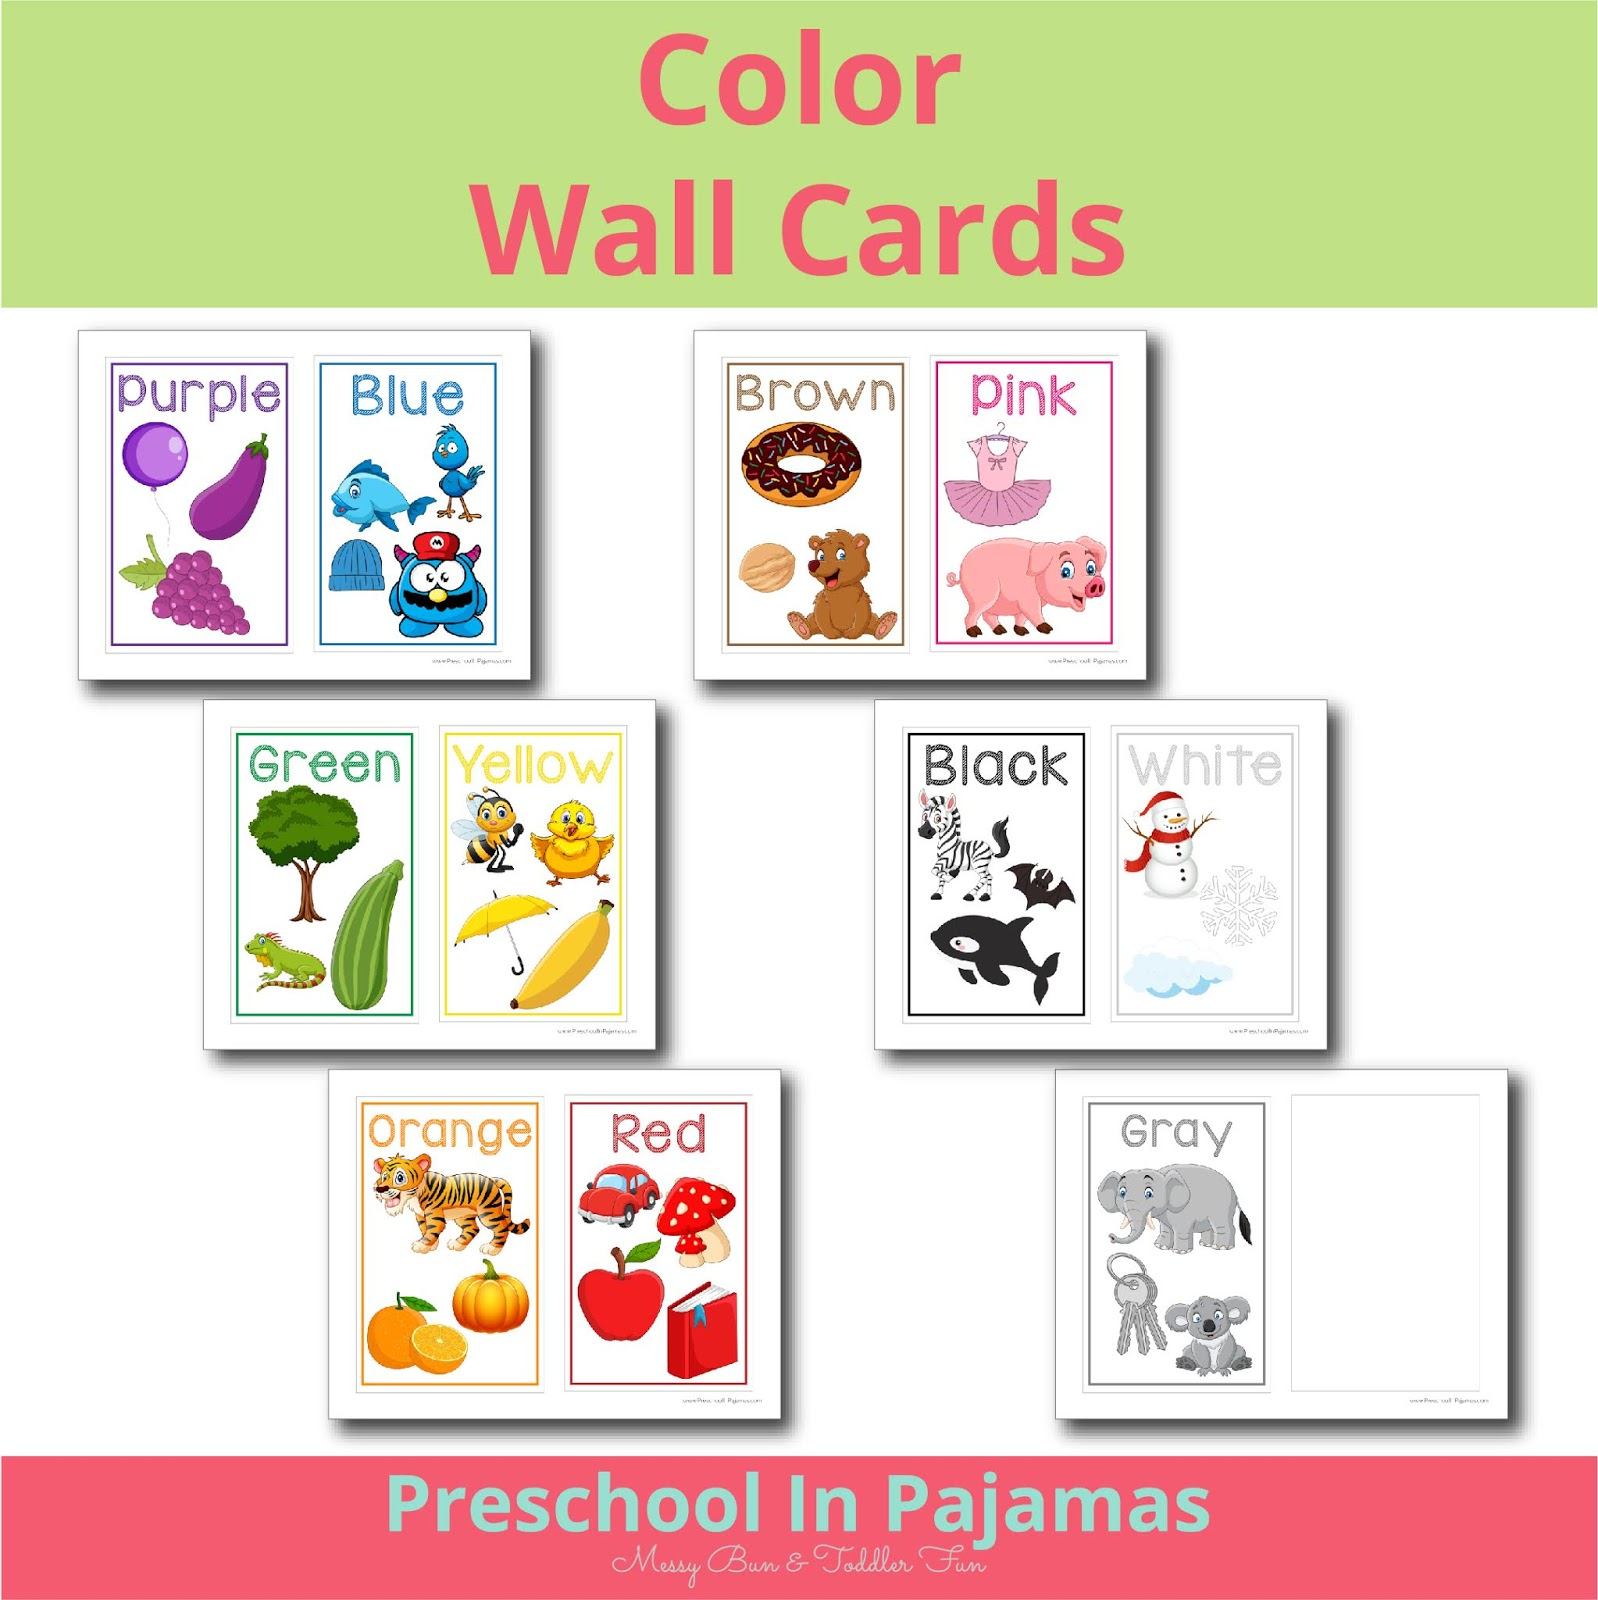 Free Printable Color Wall Cards